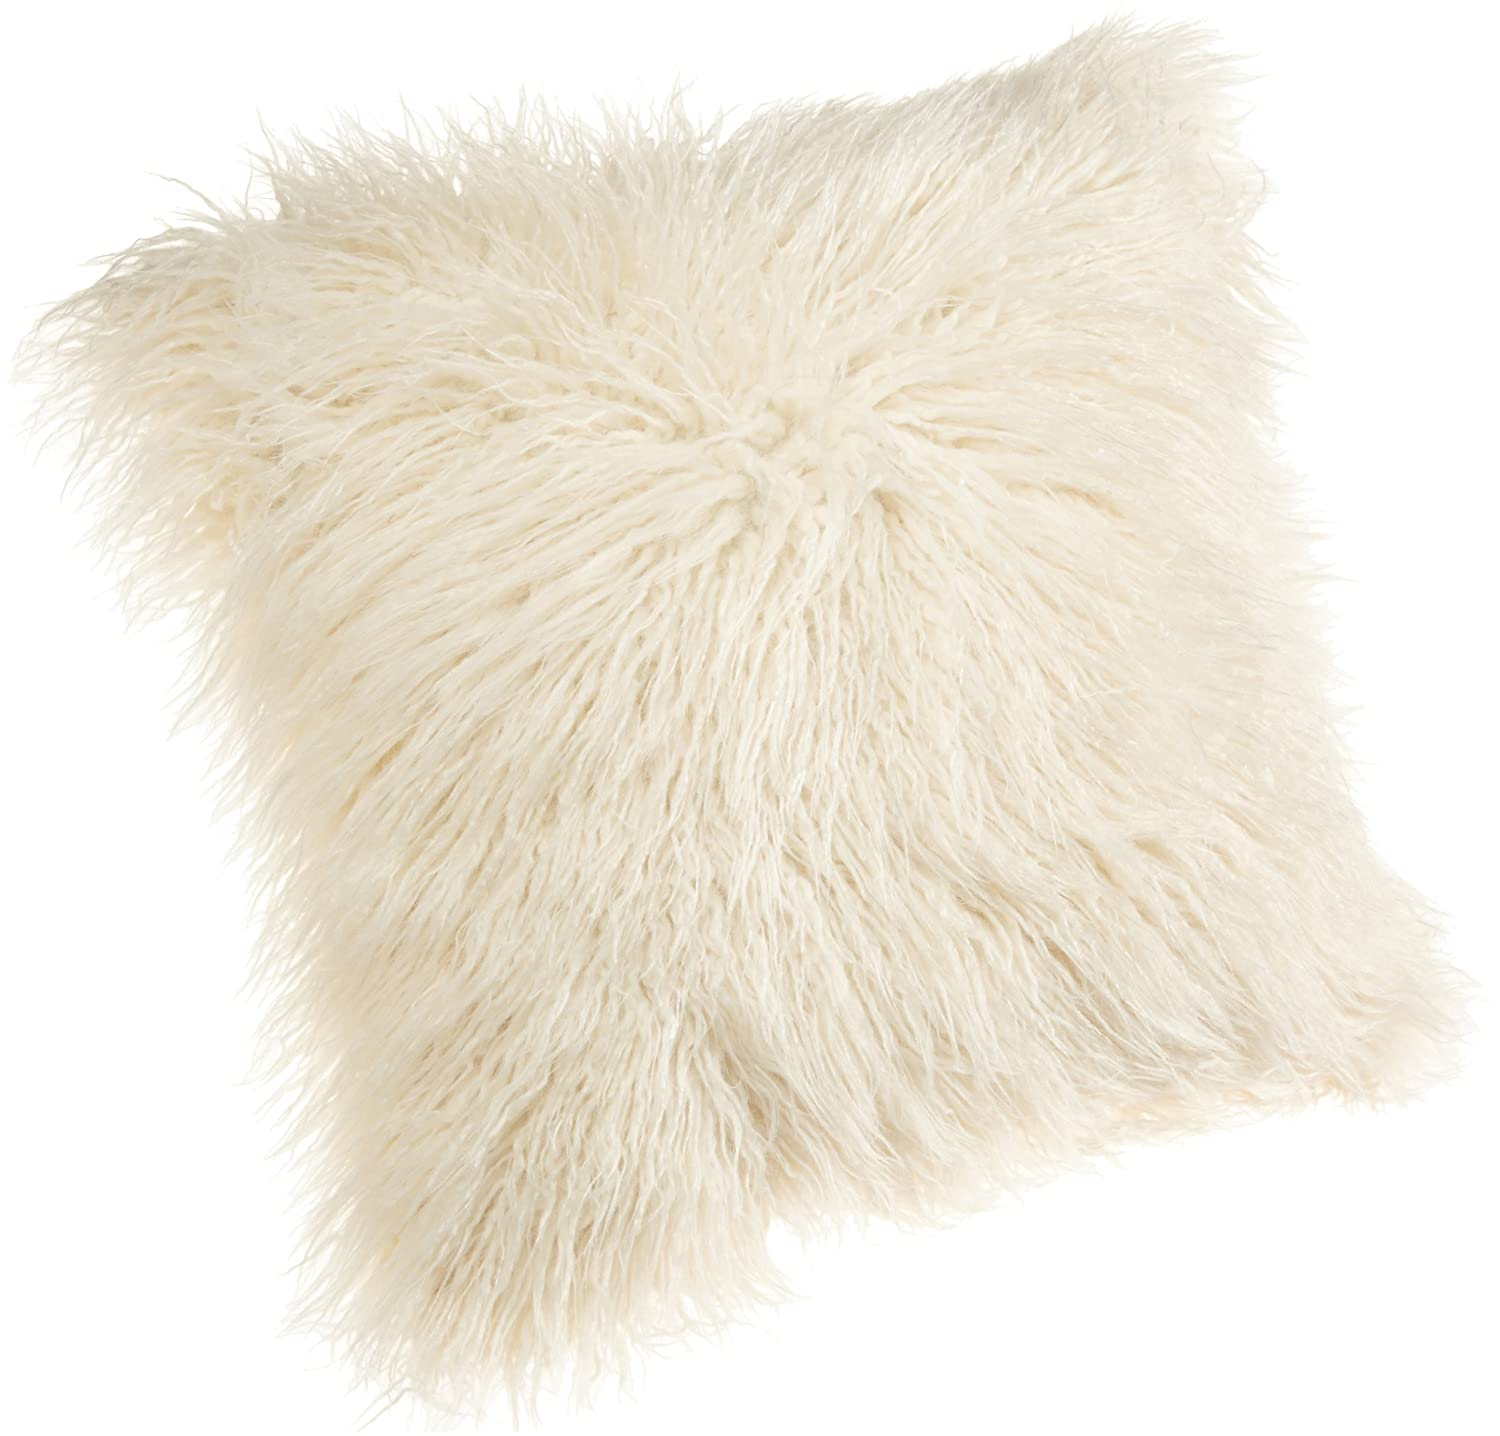 Amazon.com: Brentwood 18 Inch Mongolian Faux Fur Pillow, Natural: Home U0026  Kitchen